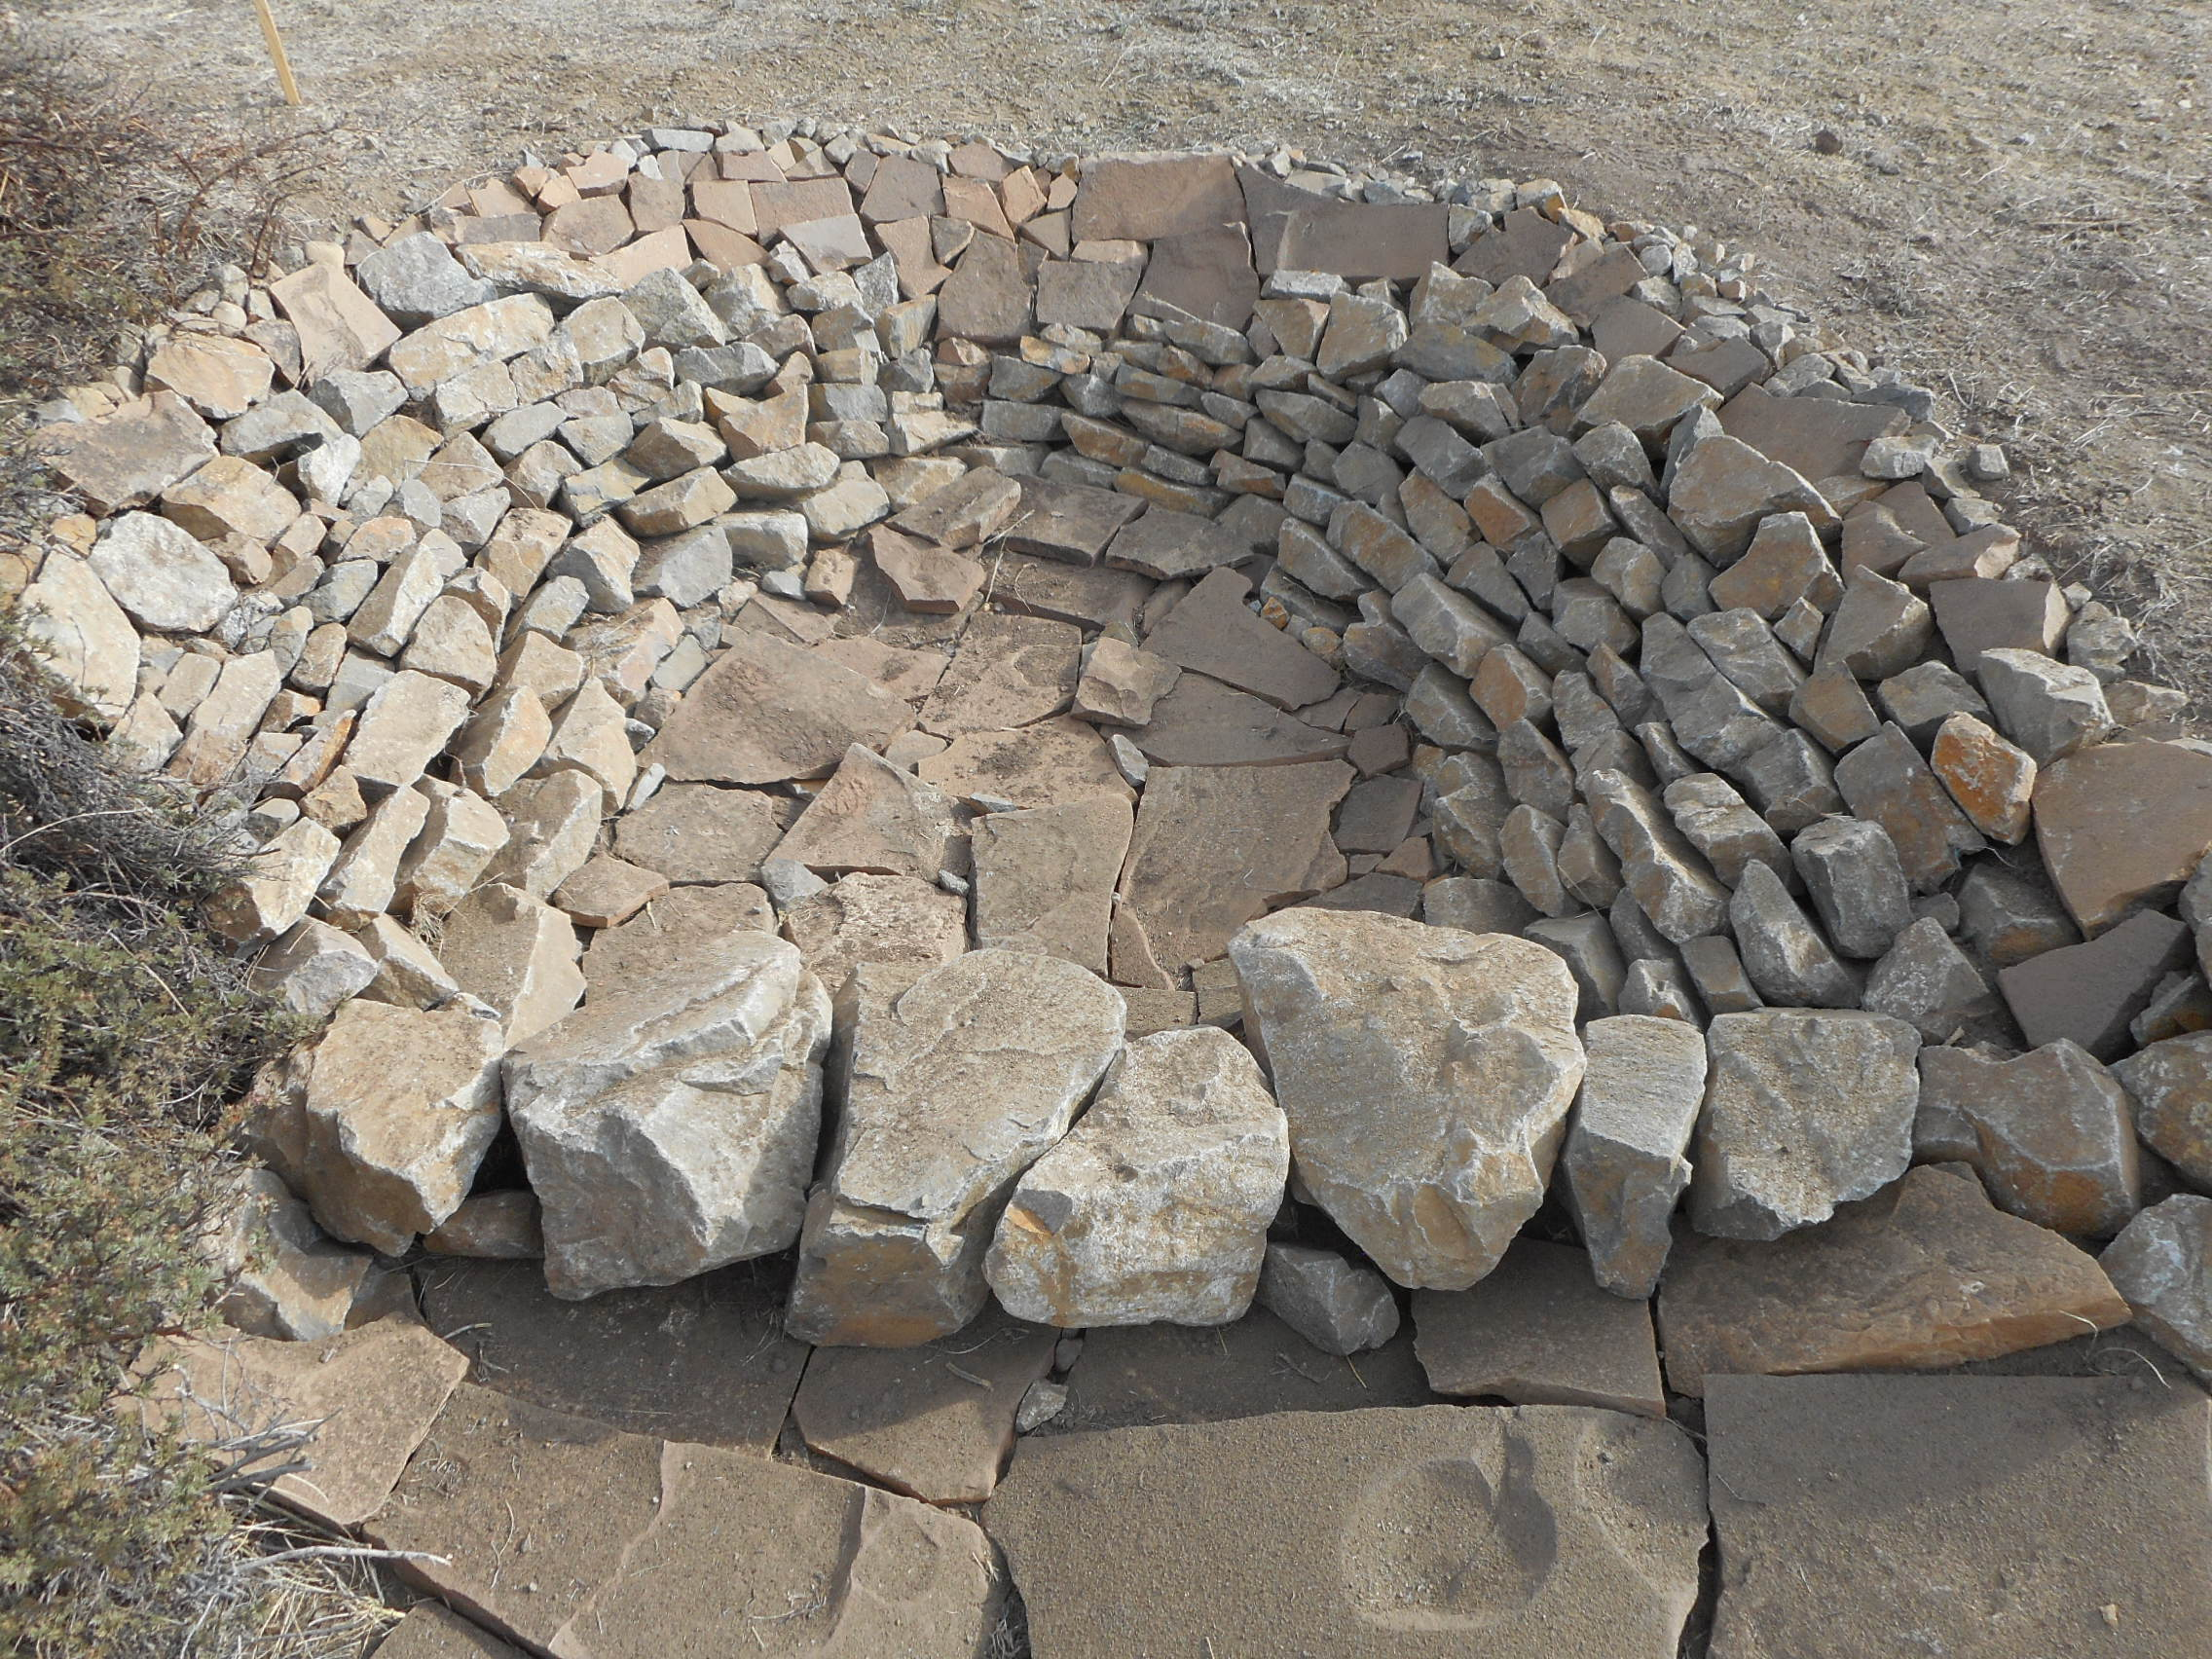 A Zuni Bowl built to stop a head cut from continuing to erode the land by migrating upstream.